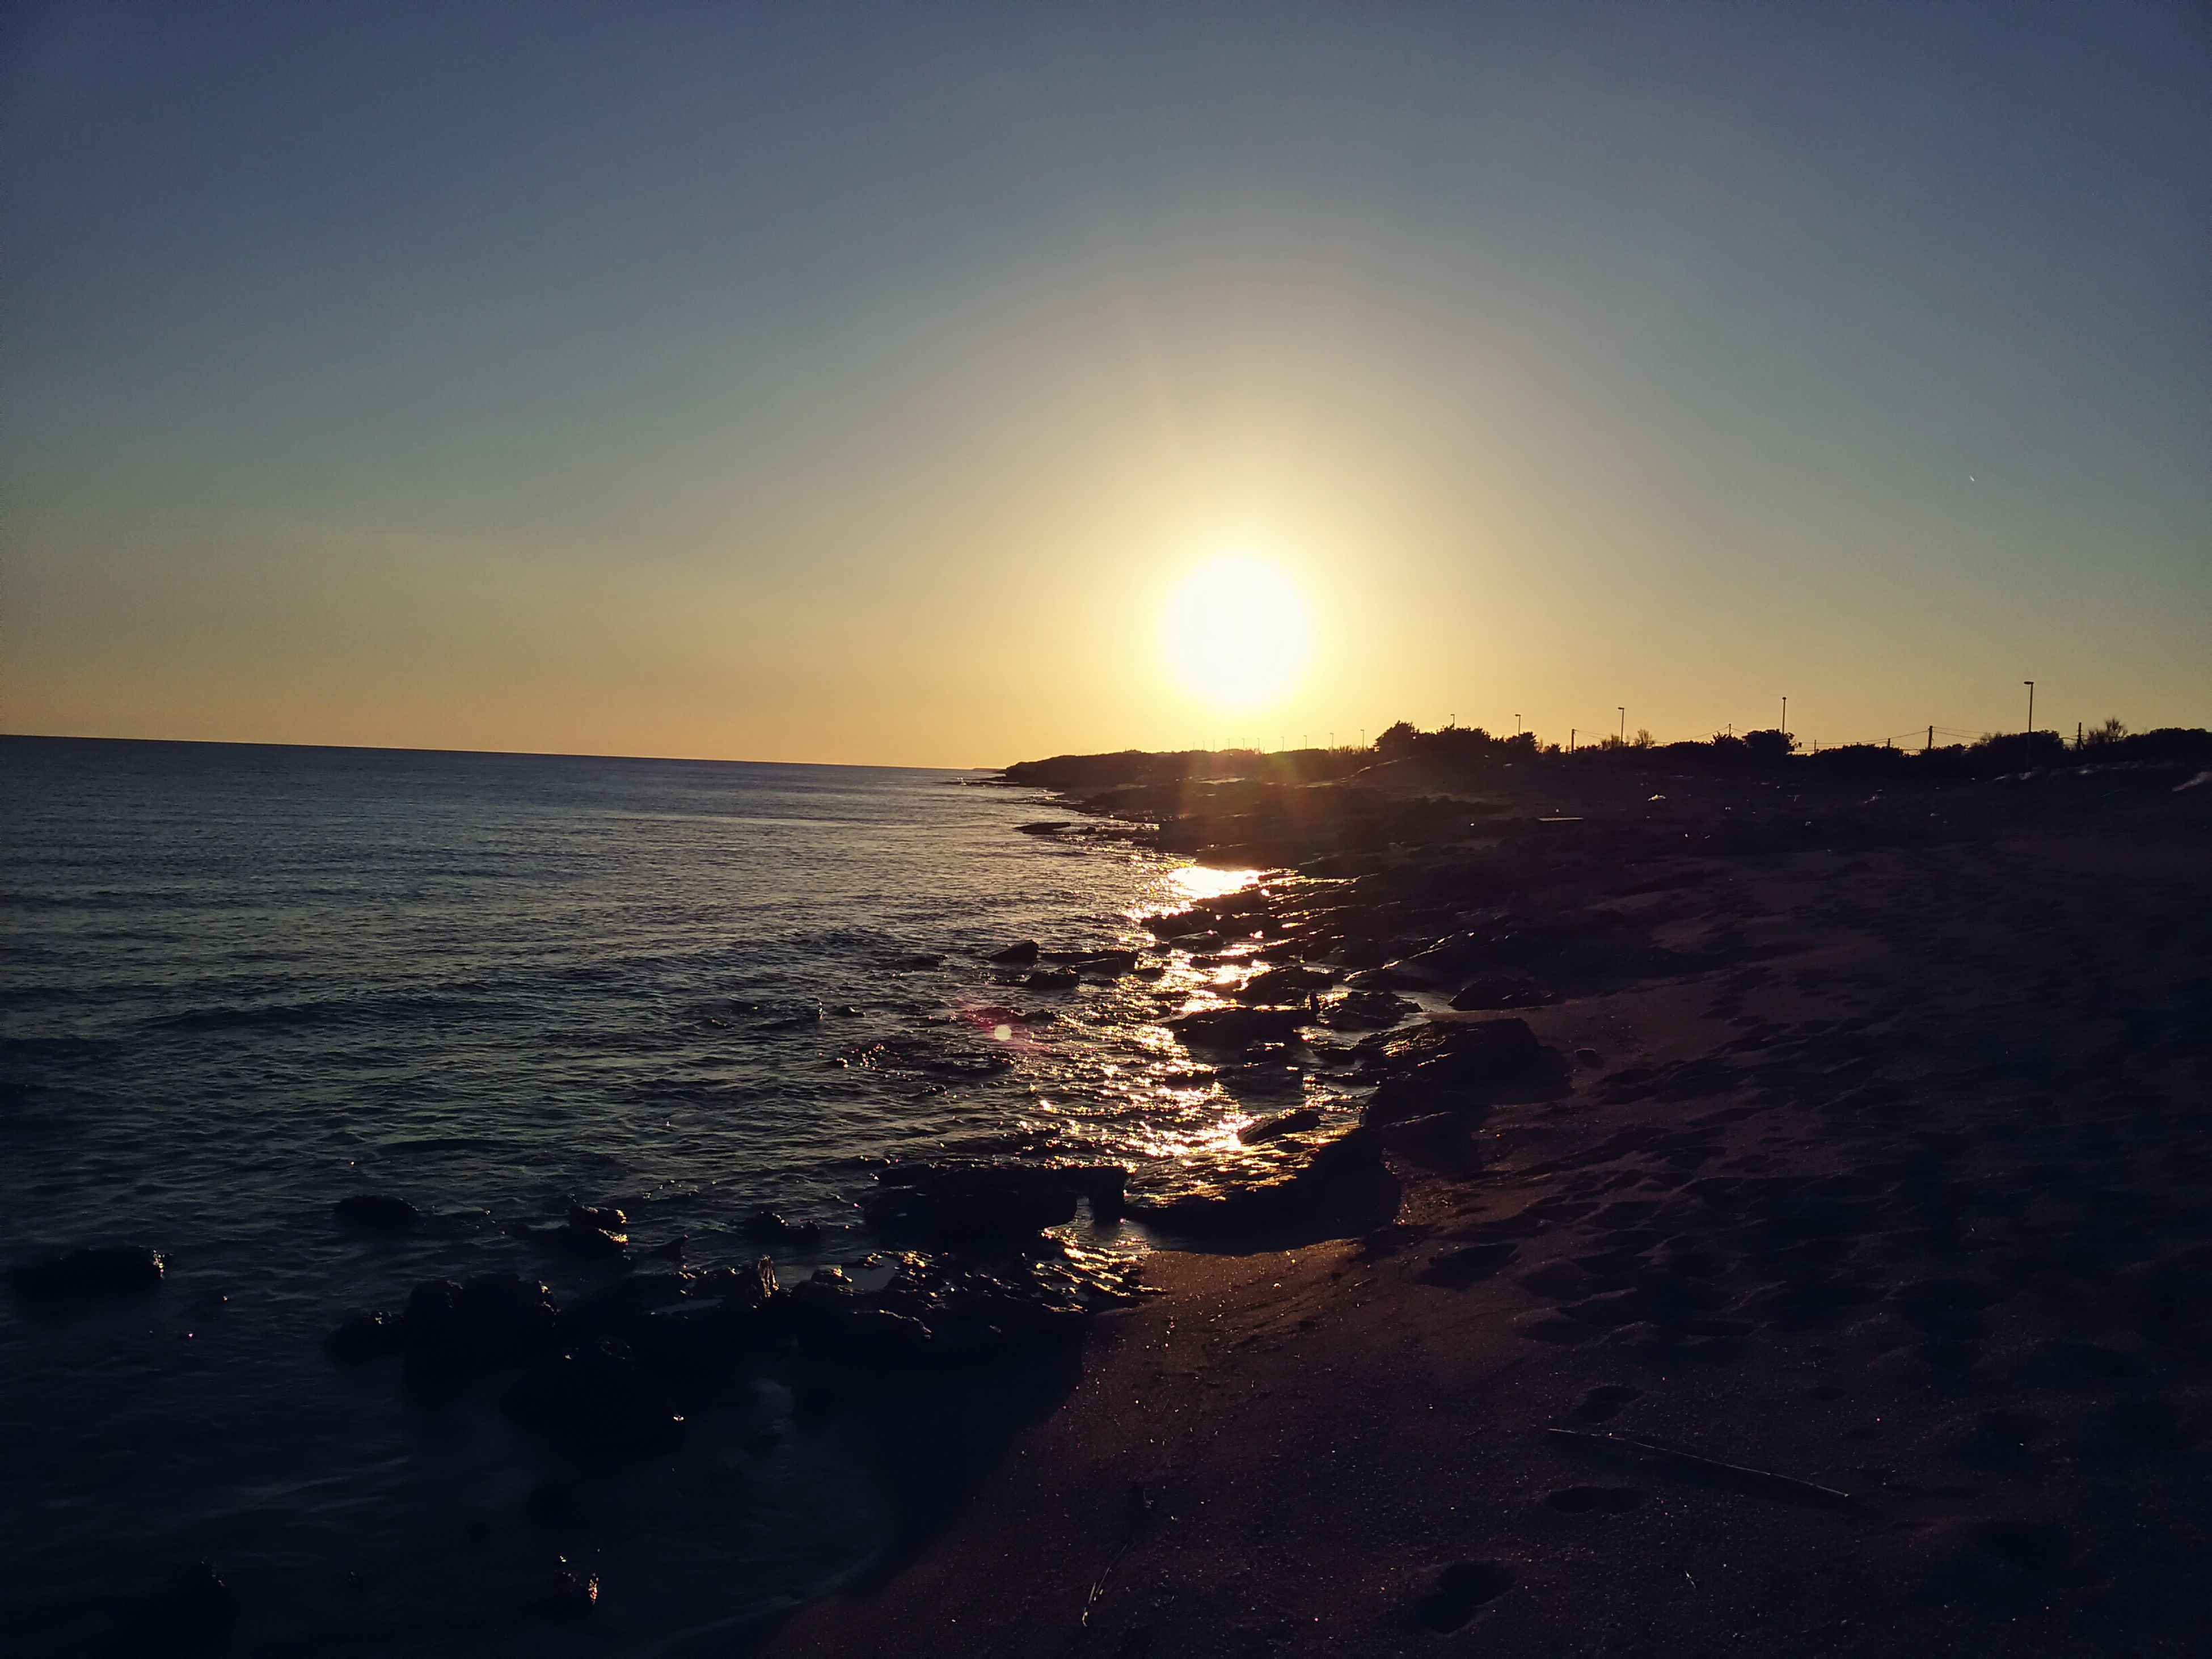 sea, water, sunset, beach, clear sky, horizon over water, scenics, sun, shore, beauty in nature, tranquil scene, copy space, tranquility, nature, silhouette, idyllic, sunlight, wave, sky, incidental people